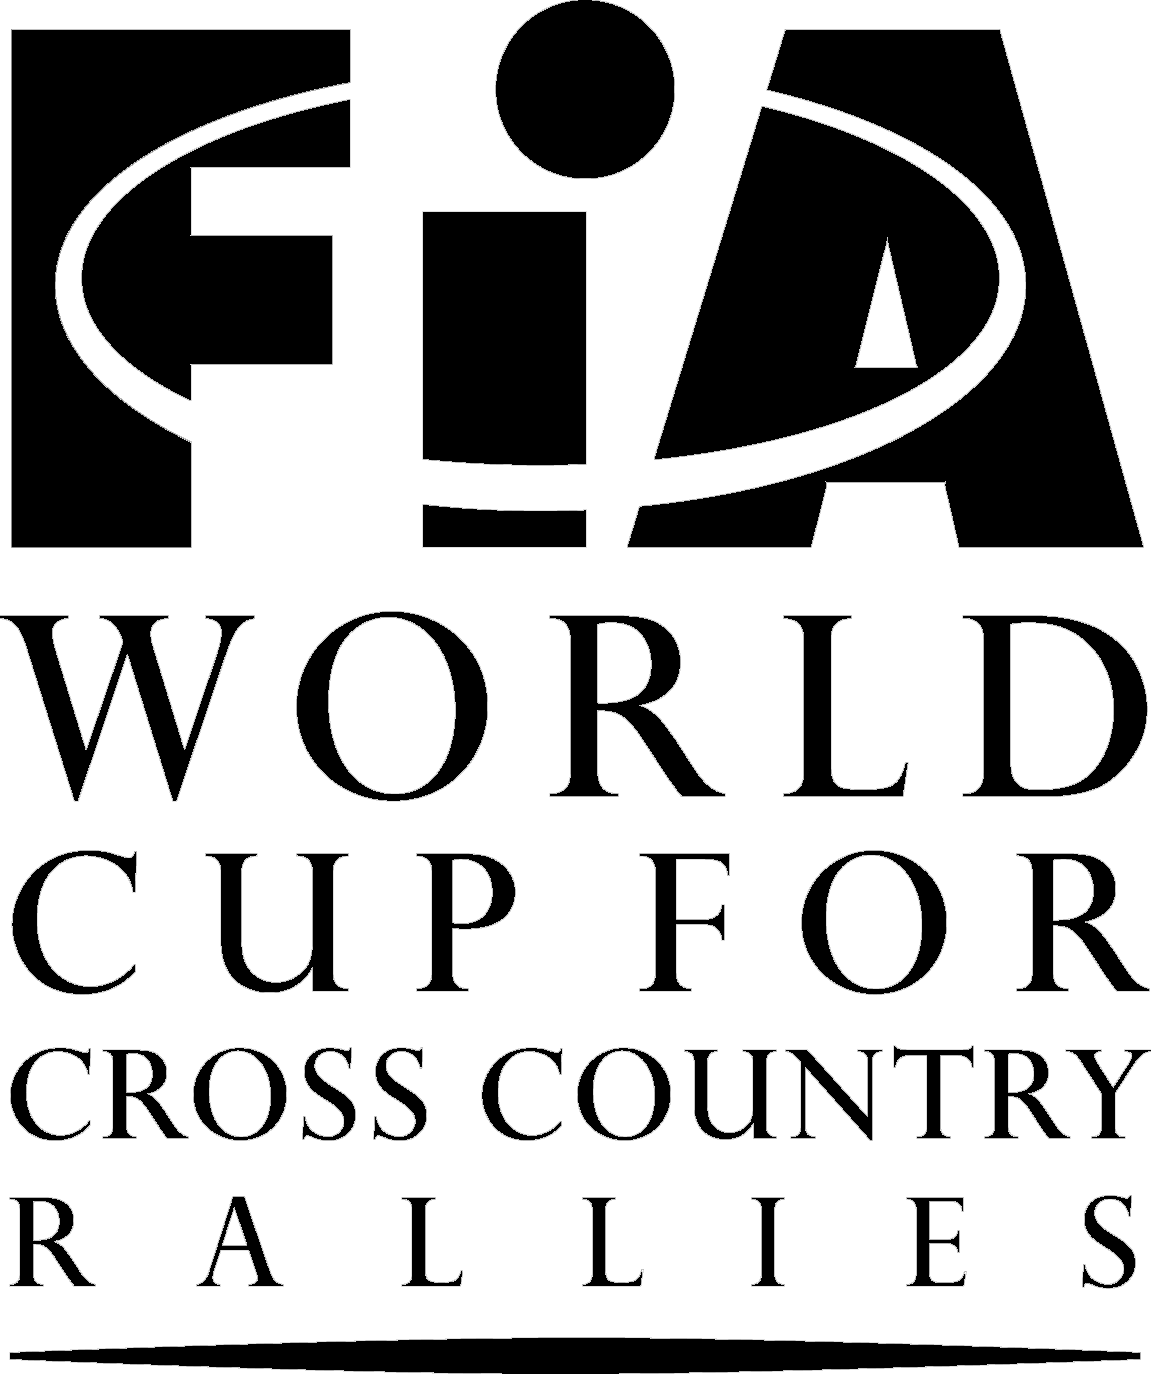 Cross country logo png. File fia world cup